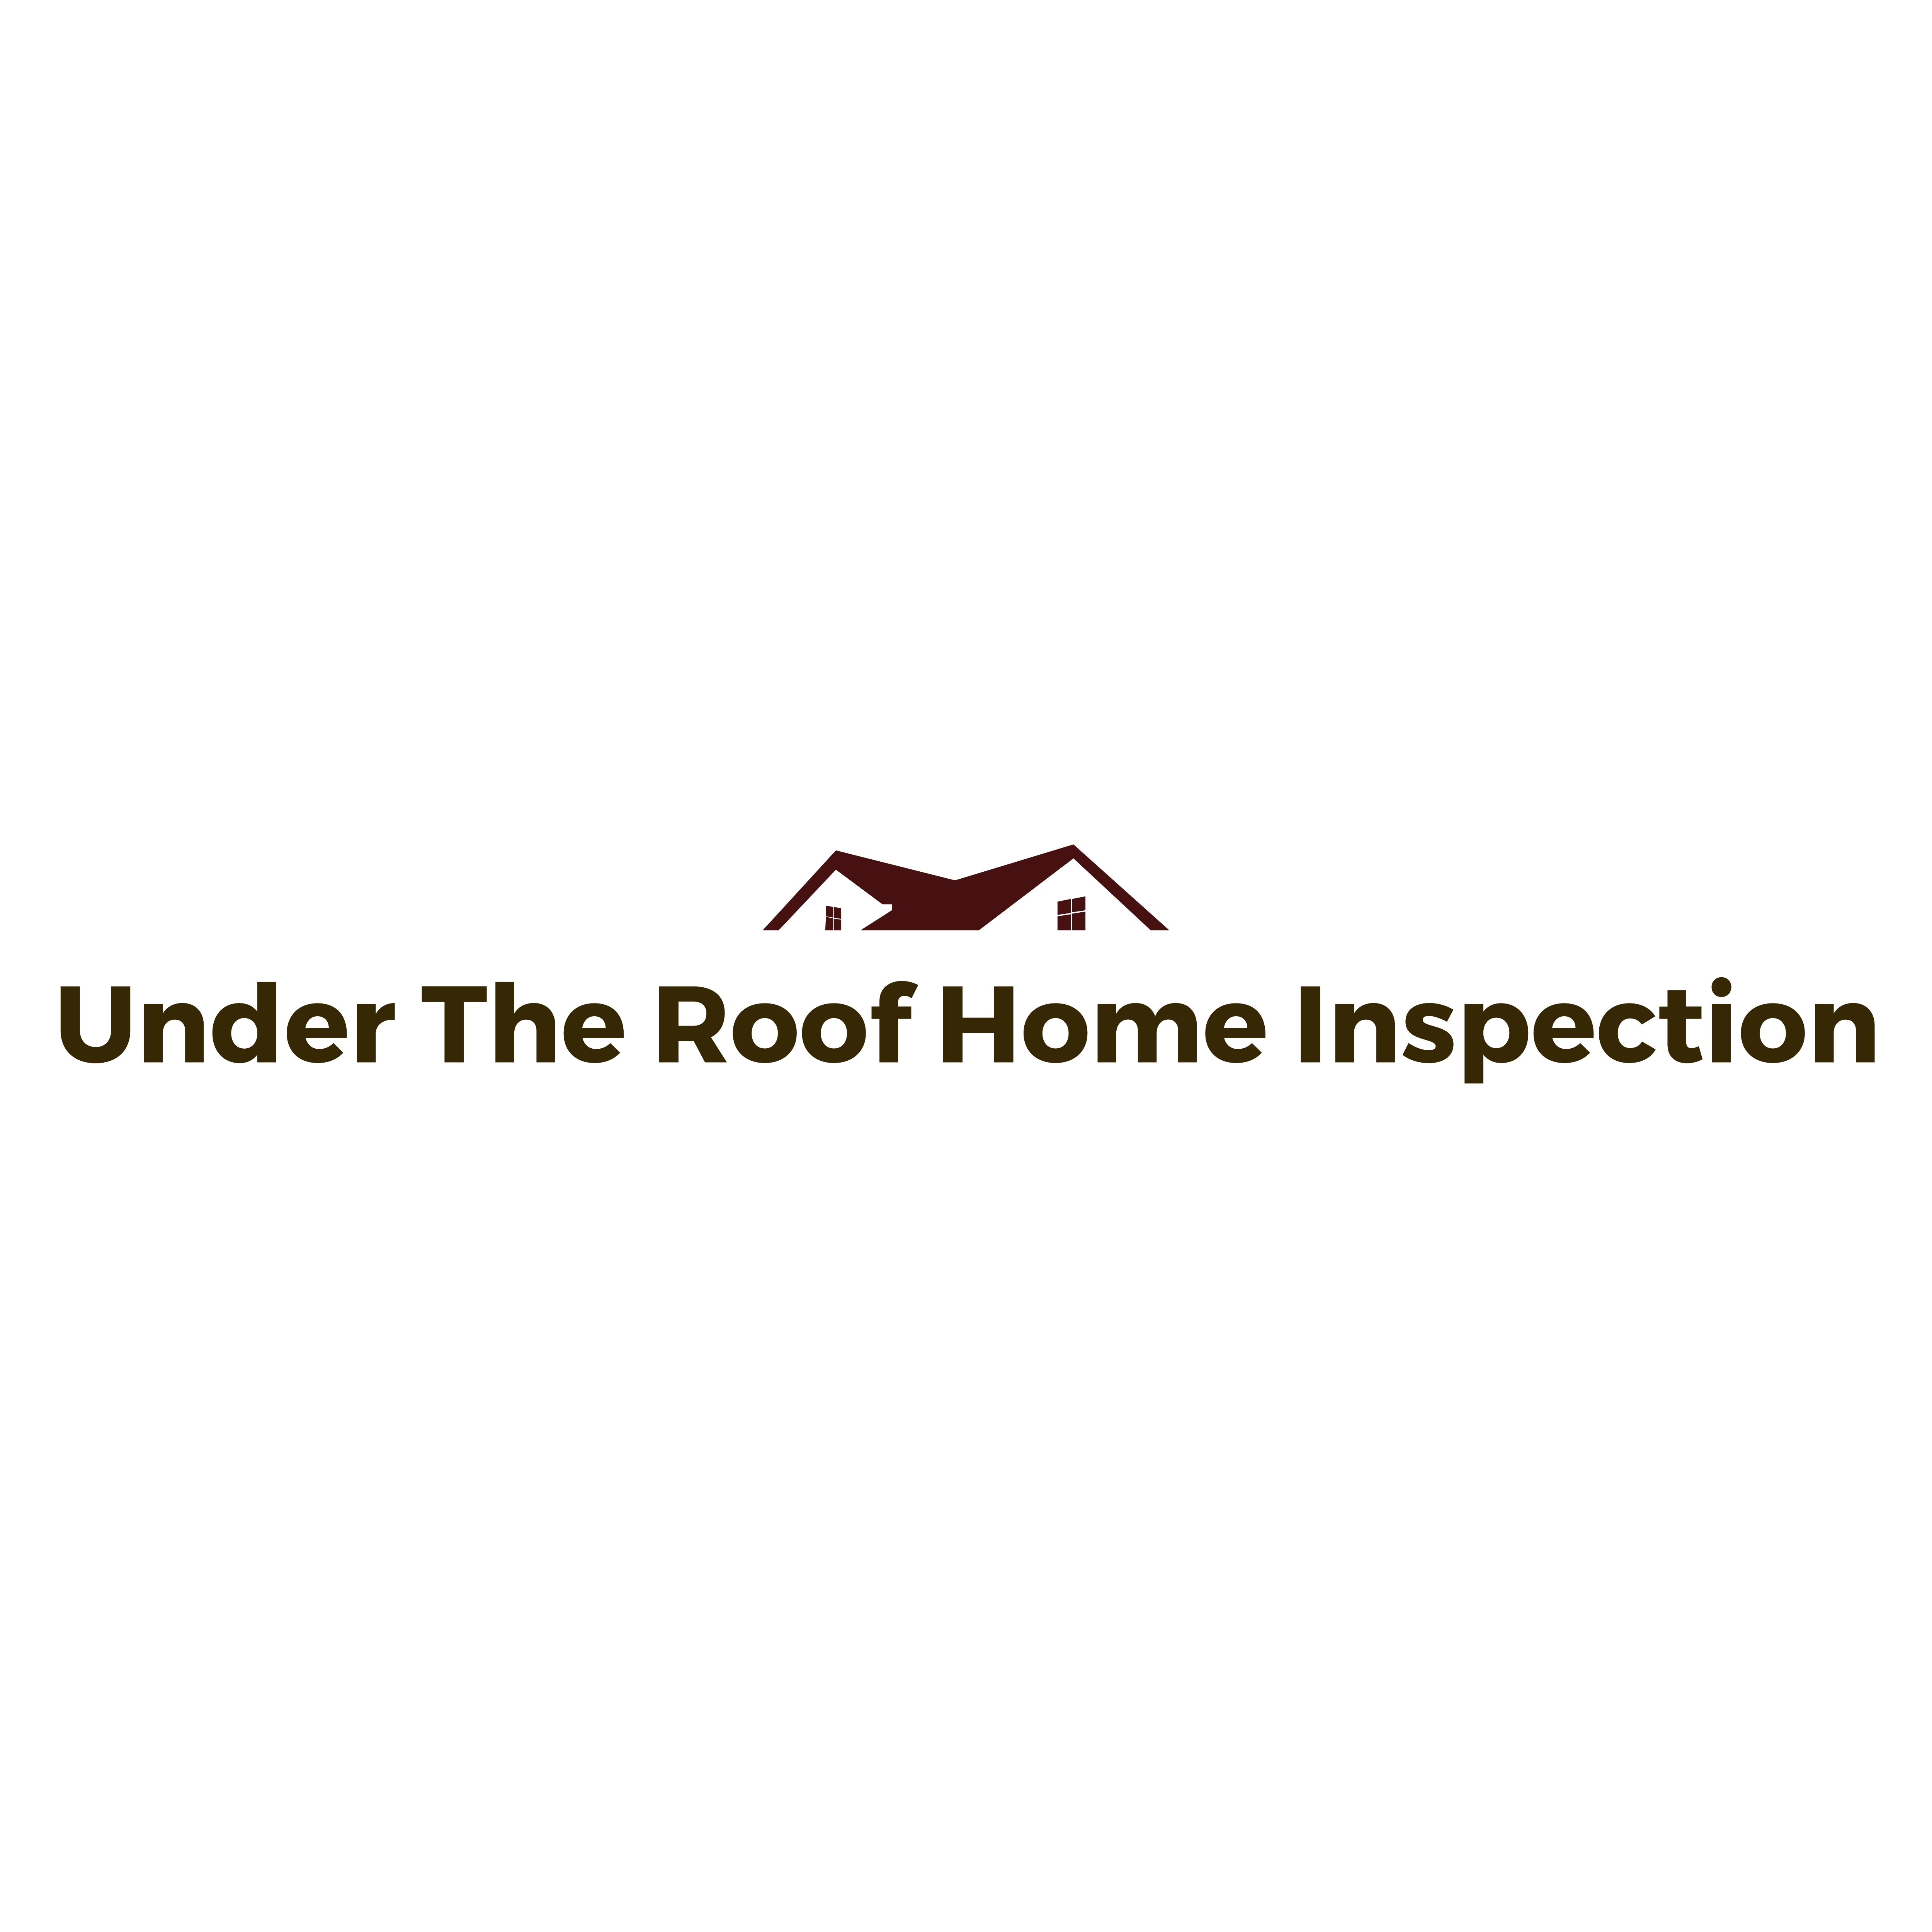 Under The Roof Home Inspection